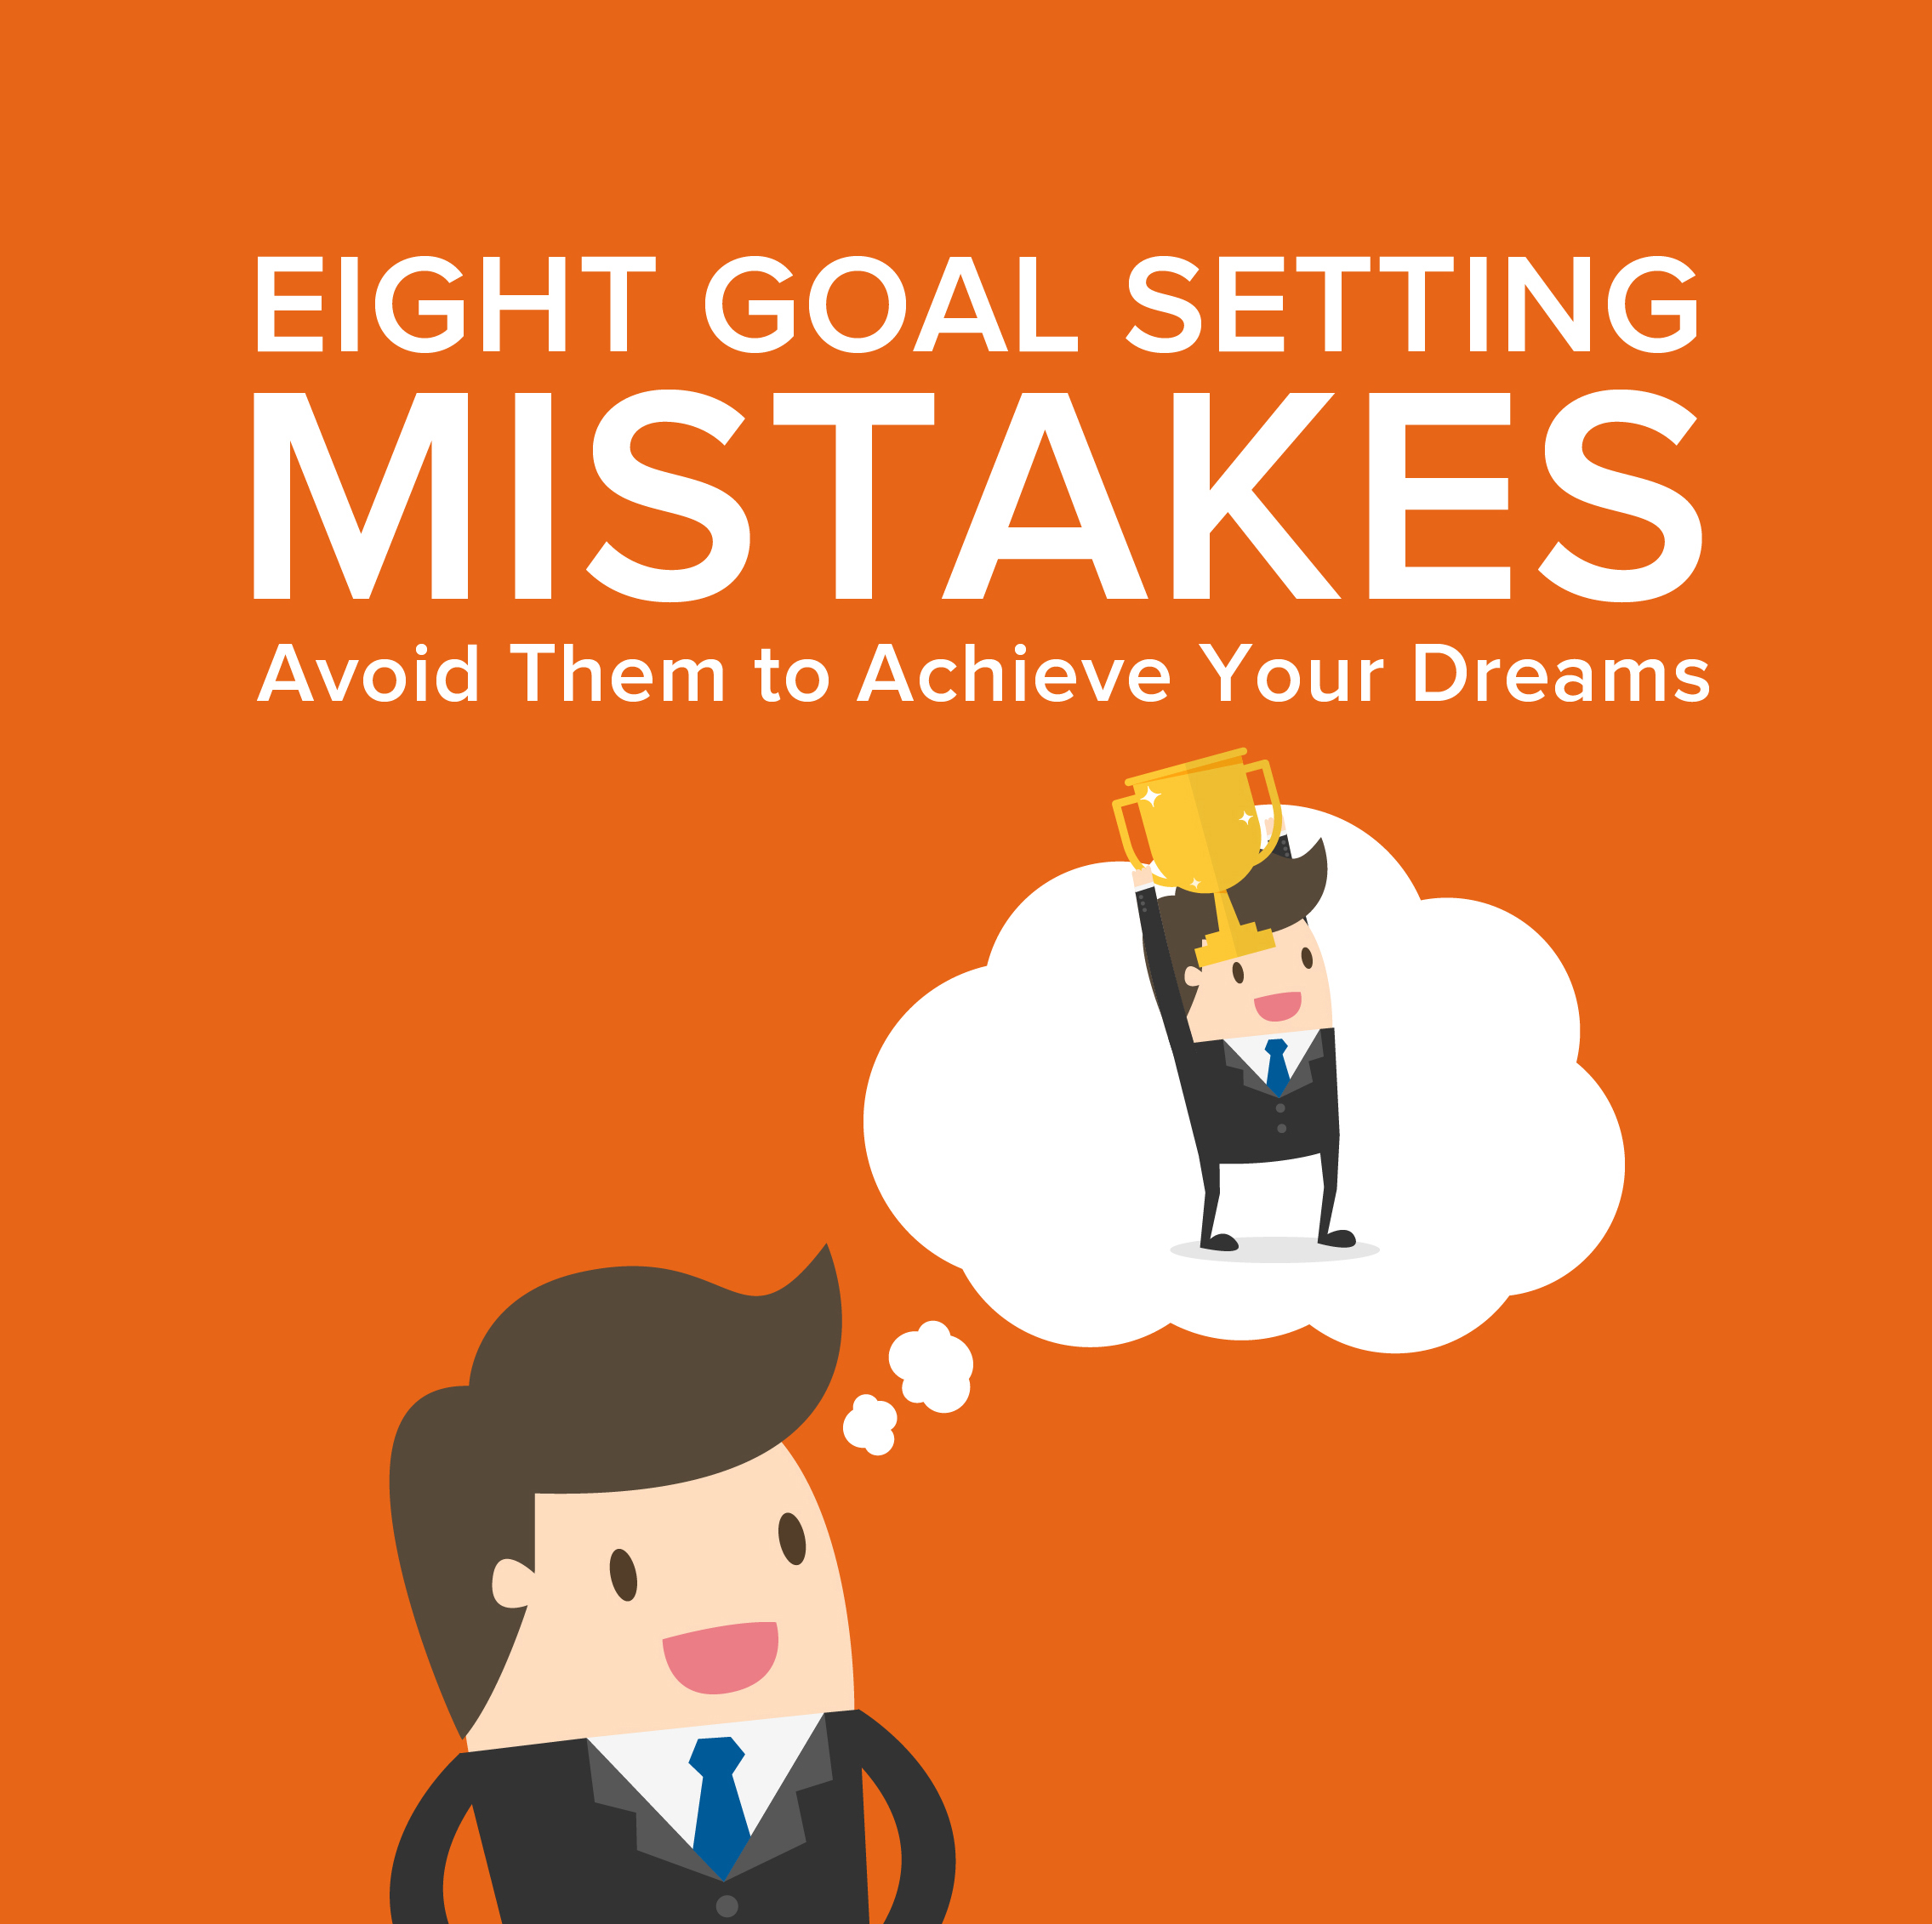 making mistakes good for decision mkaing pdf article